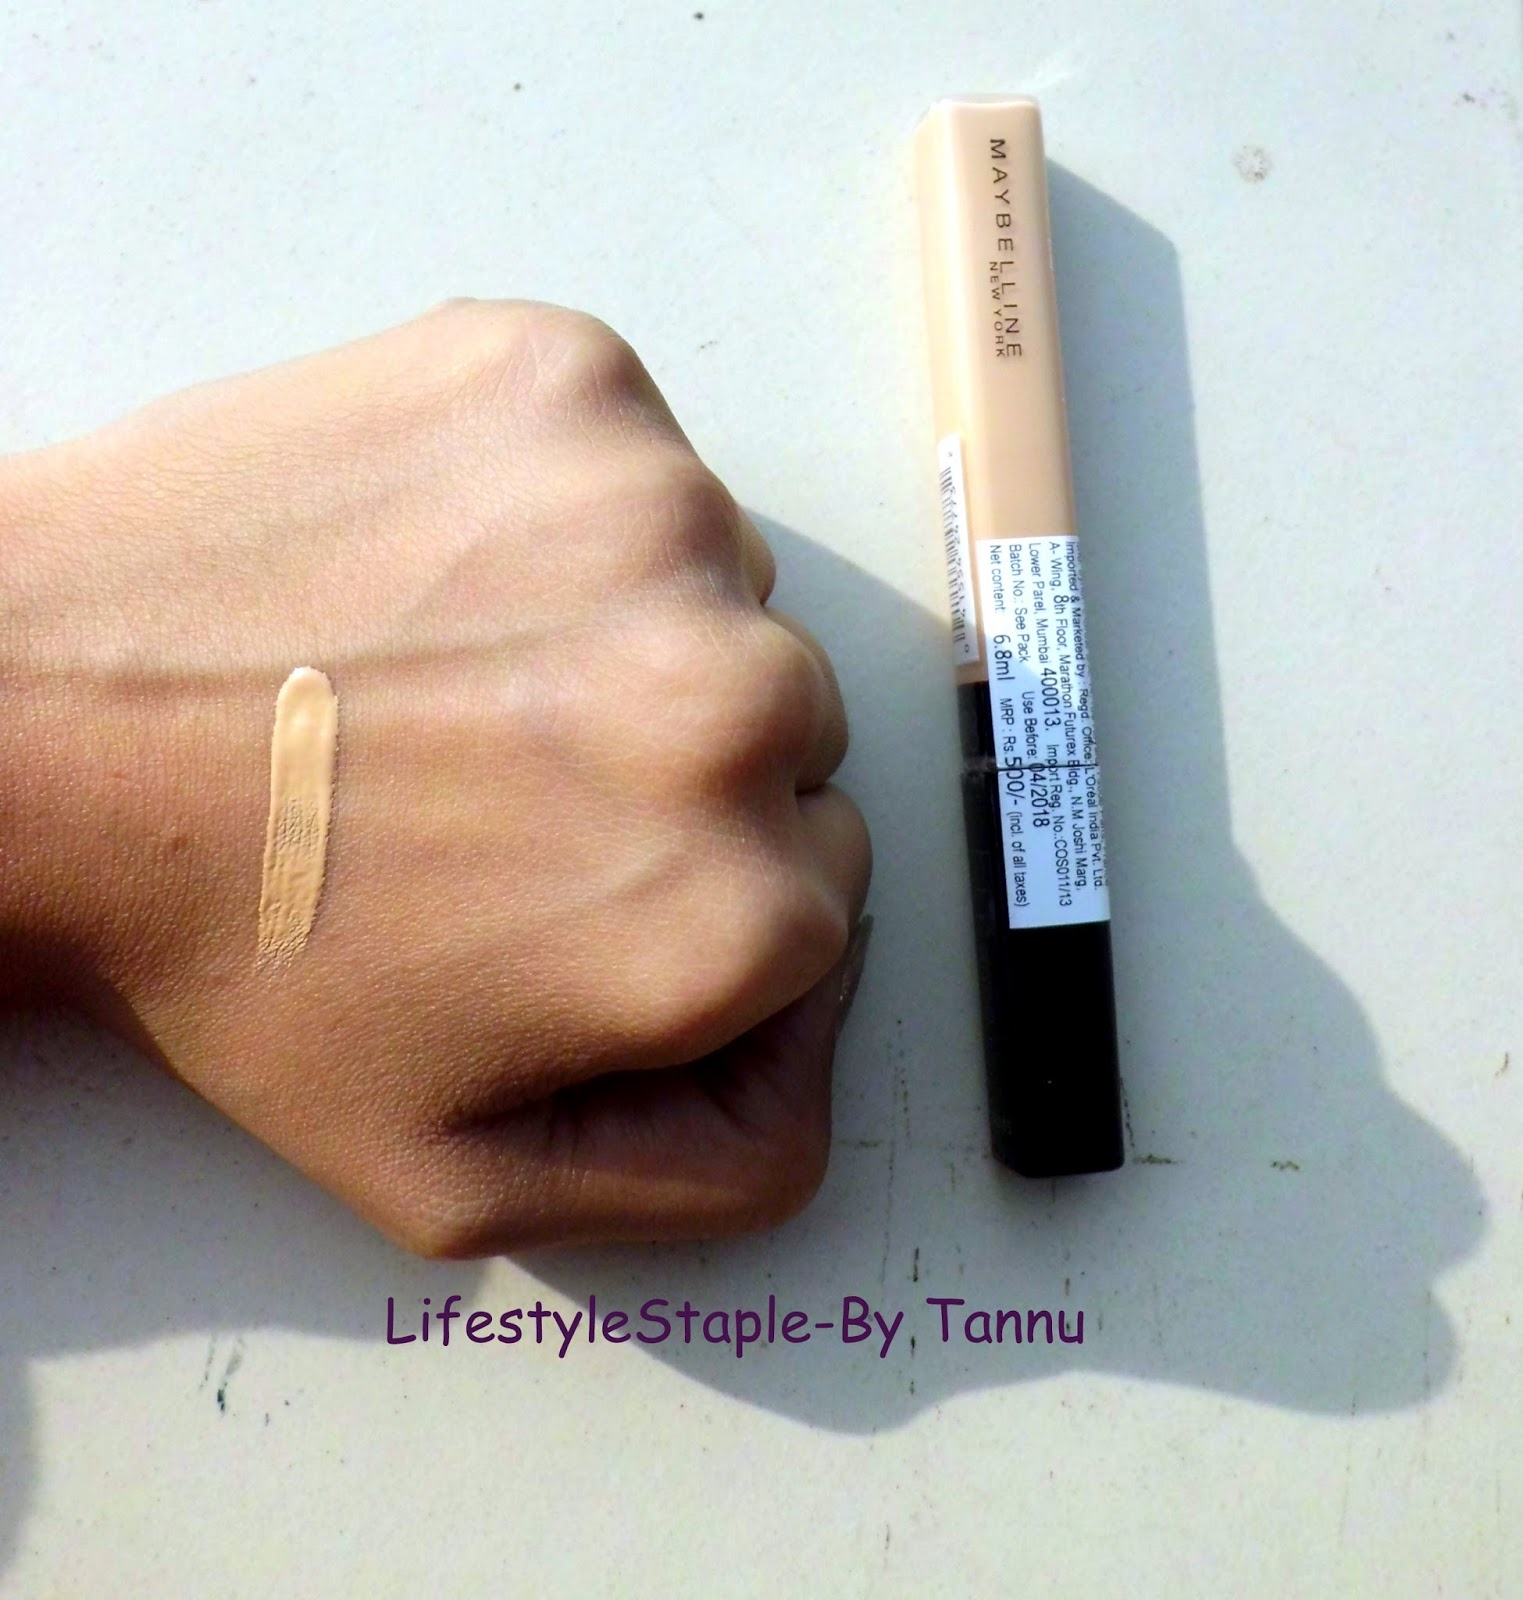 Maybelline Fit Me Concealer 20 Sand Price Swatch Review I Have A Bit Of Dark Circles Issue And This Bomb Product Covers Them Pretty Well As Is Light Weight That Does Not Cake At All